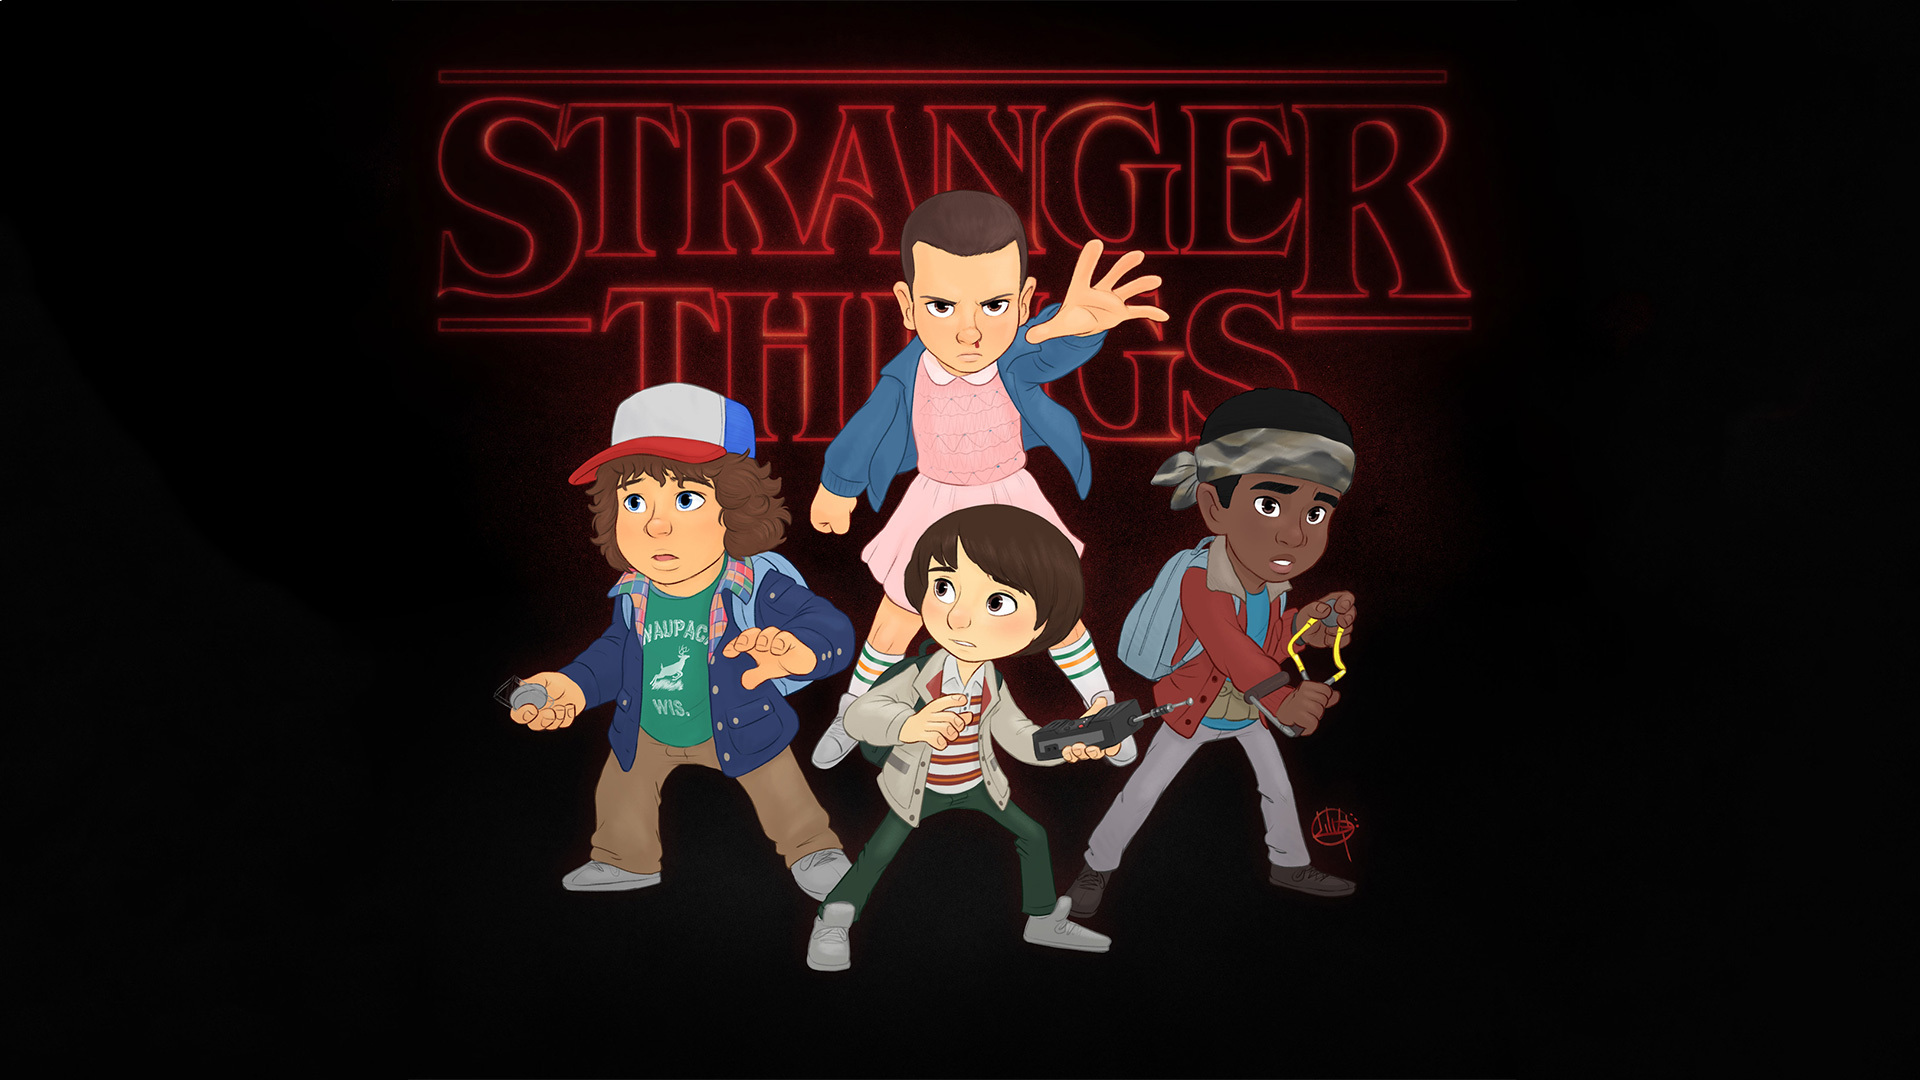 Gravity Falls Characters Wallpaper 2048x1152 1920x1080 Stranger Things Fanart Laptop Full Hd 1080p Hd